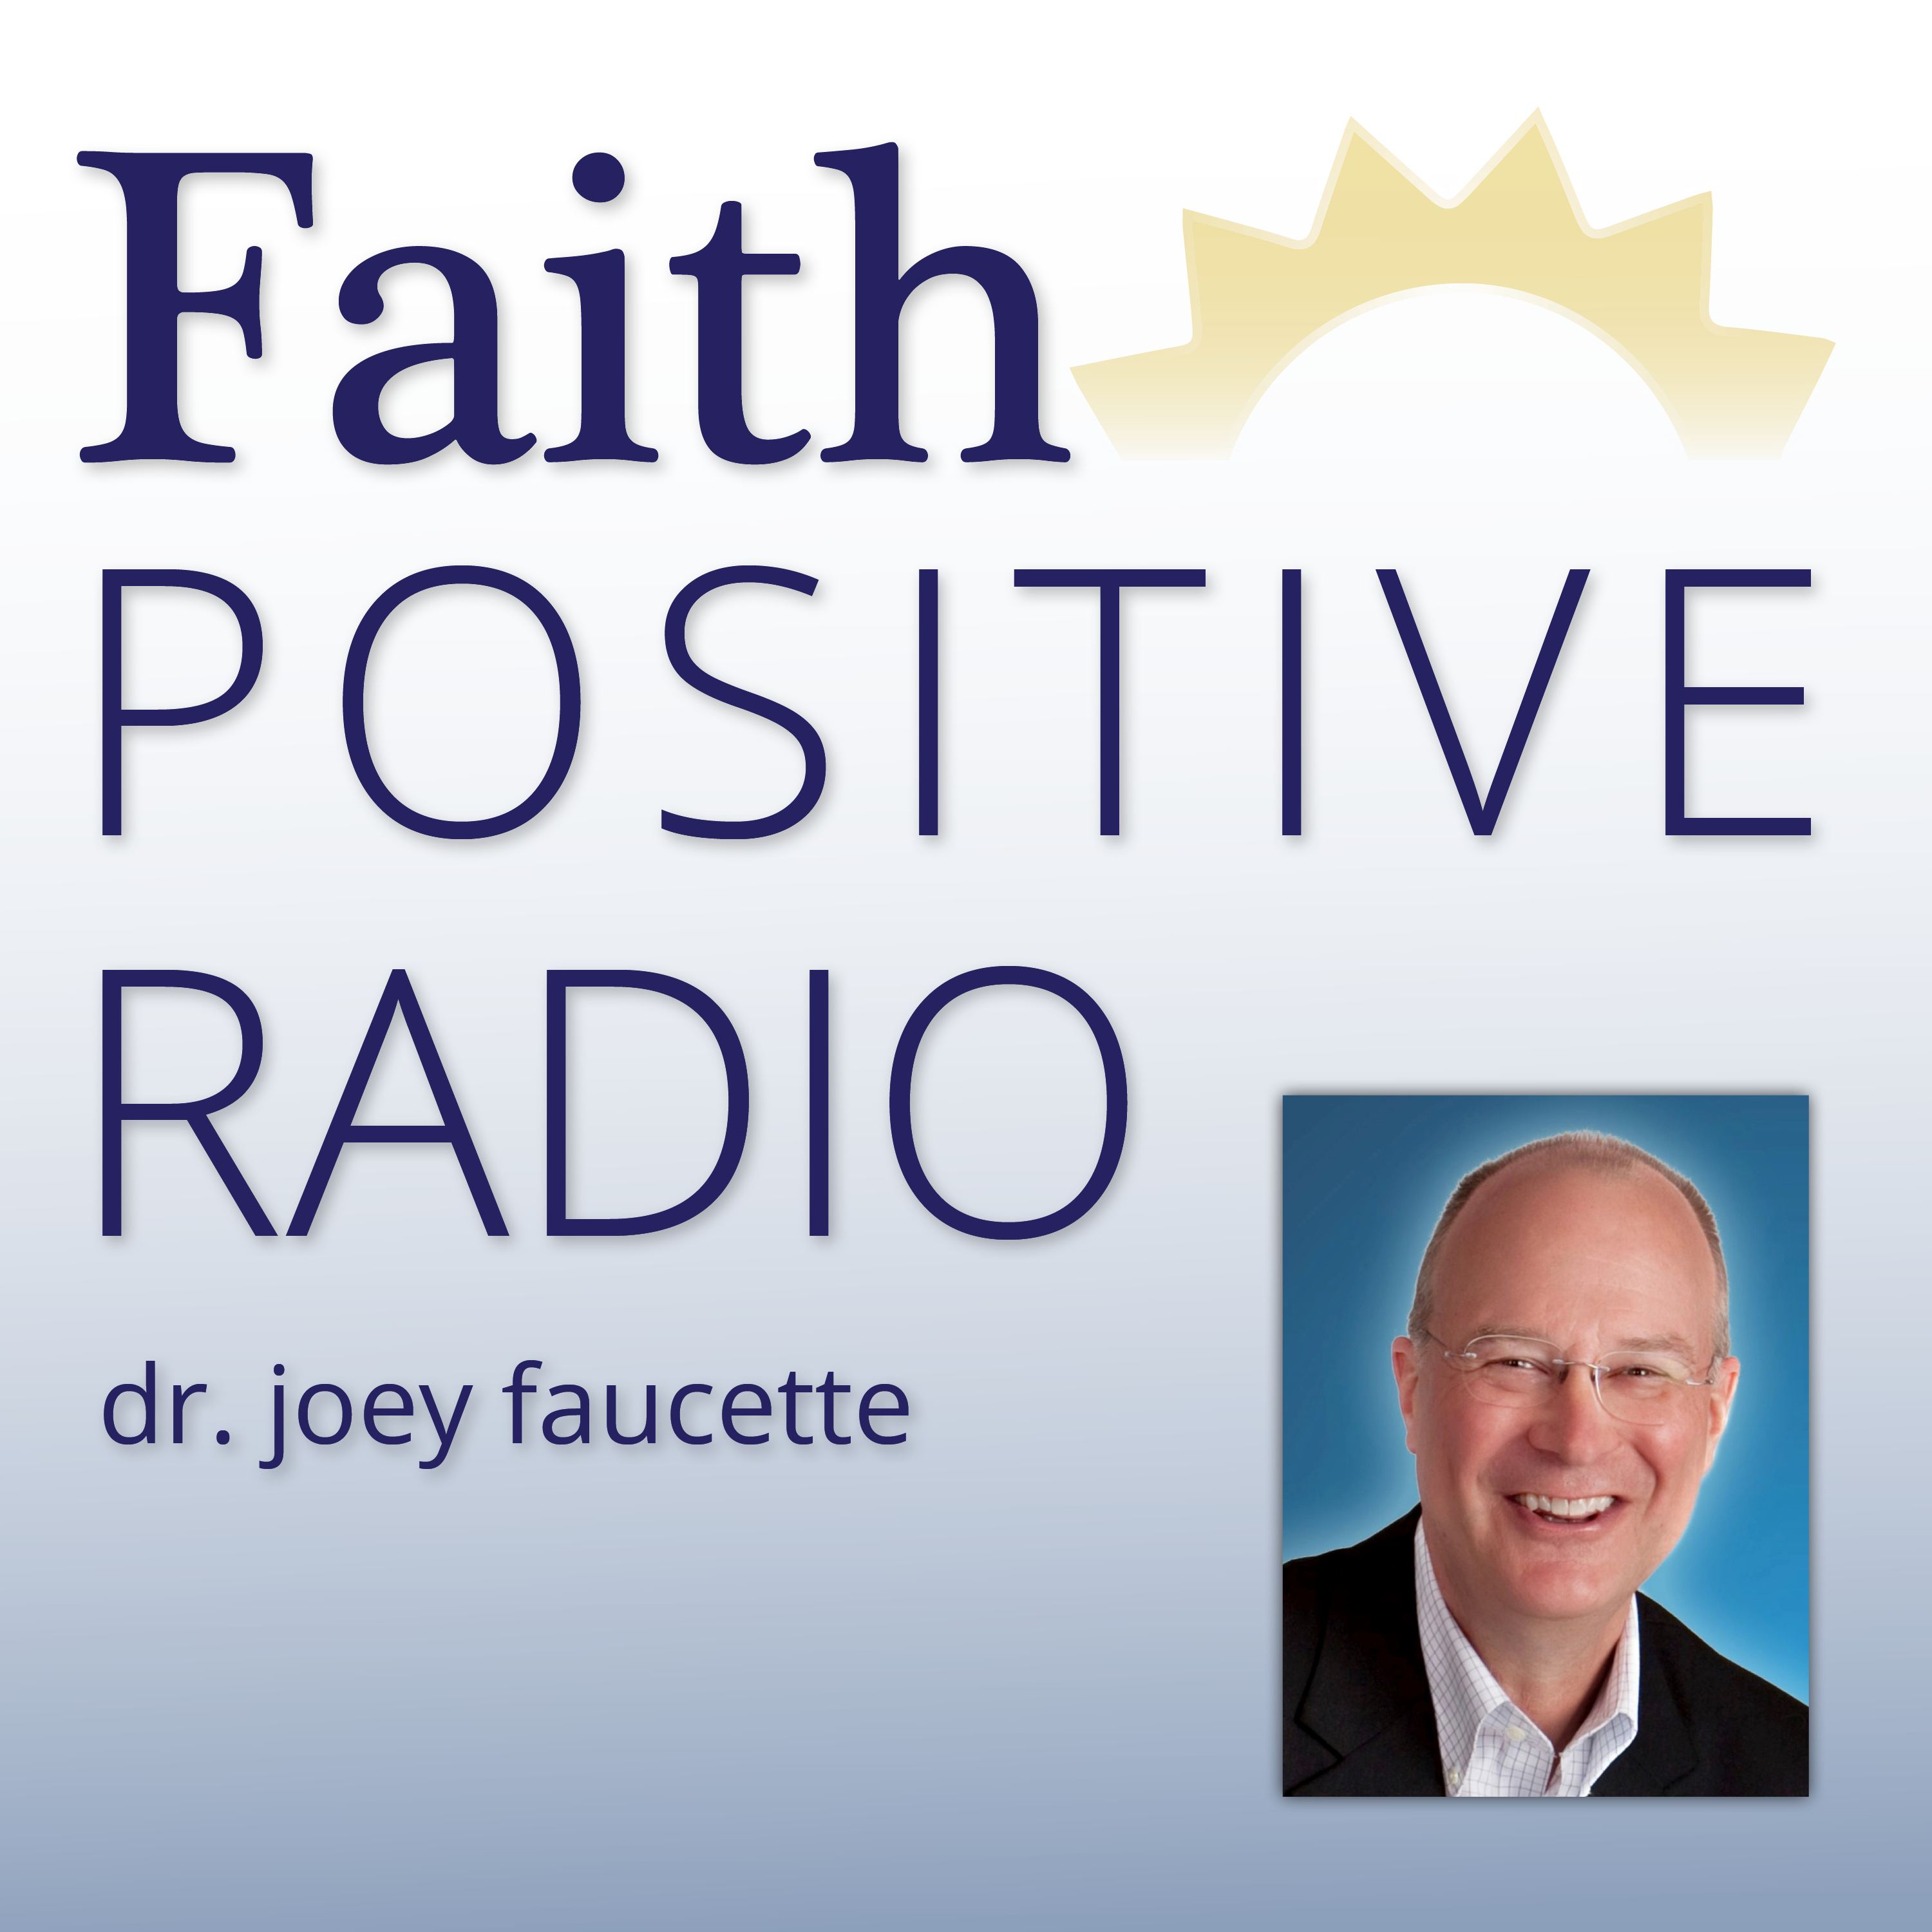 Faith Positive Radio: Increase your Faith with greater Joy at work so you Love God and others more! show art